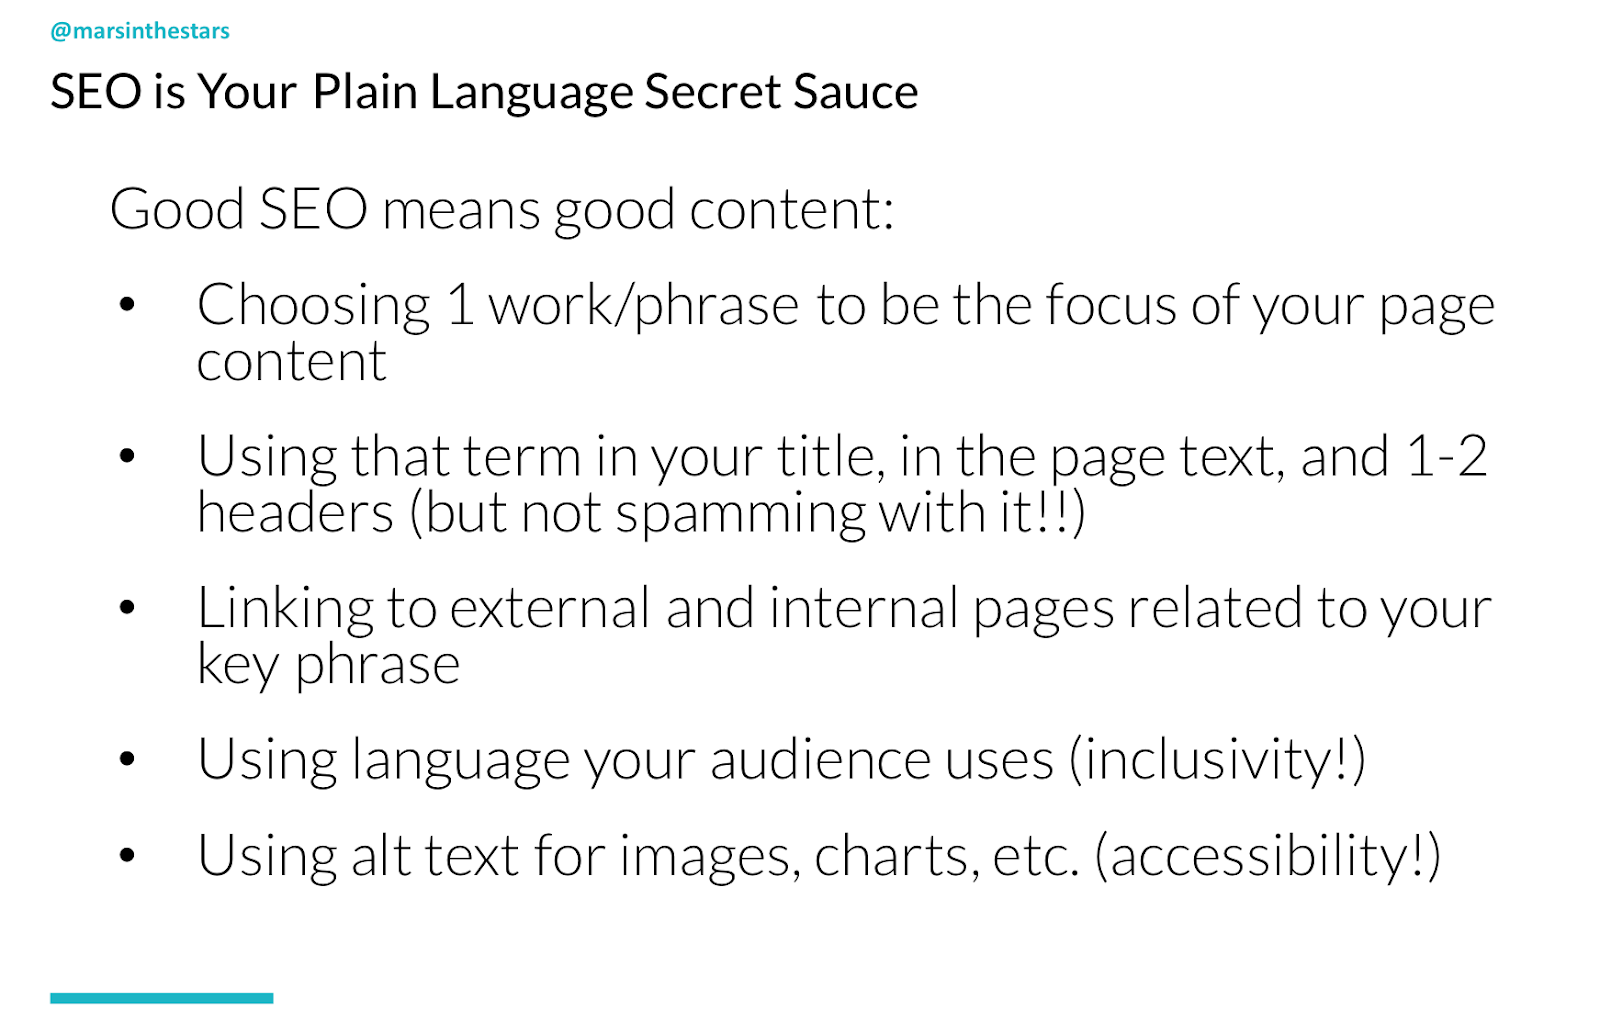 Slide shows 'SEO is your Plain Language secret sauce.' Good SEO means: Choosing 1 word/phrase to be the focus on your page, using that term in your title, in the page text, and 1-2 headers (but not spamming with it), linking to external and internal pages related to your key phrase, using language your audience uses (inclusivity) and using alt-text for images, charts etc (accessibility).